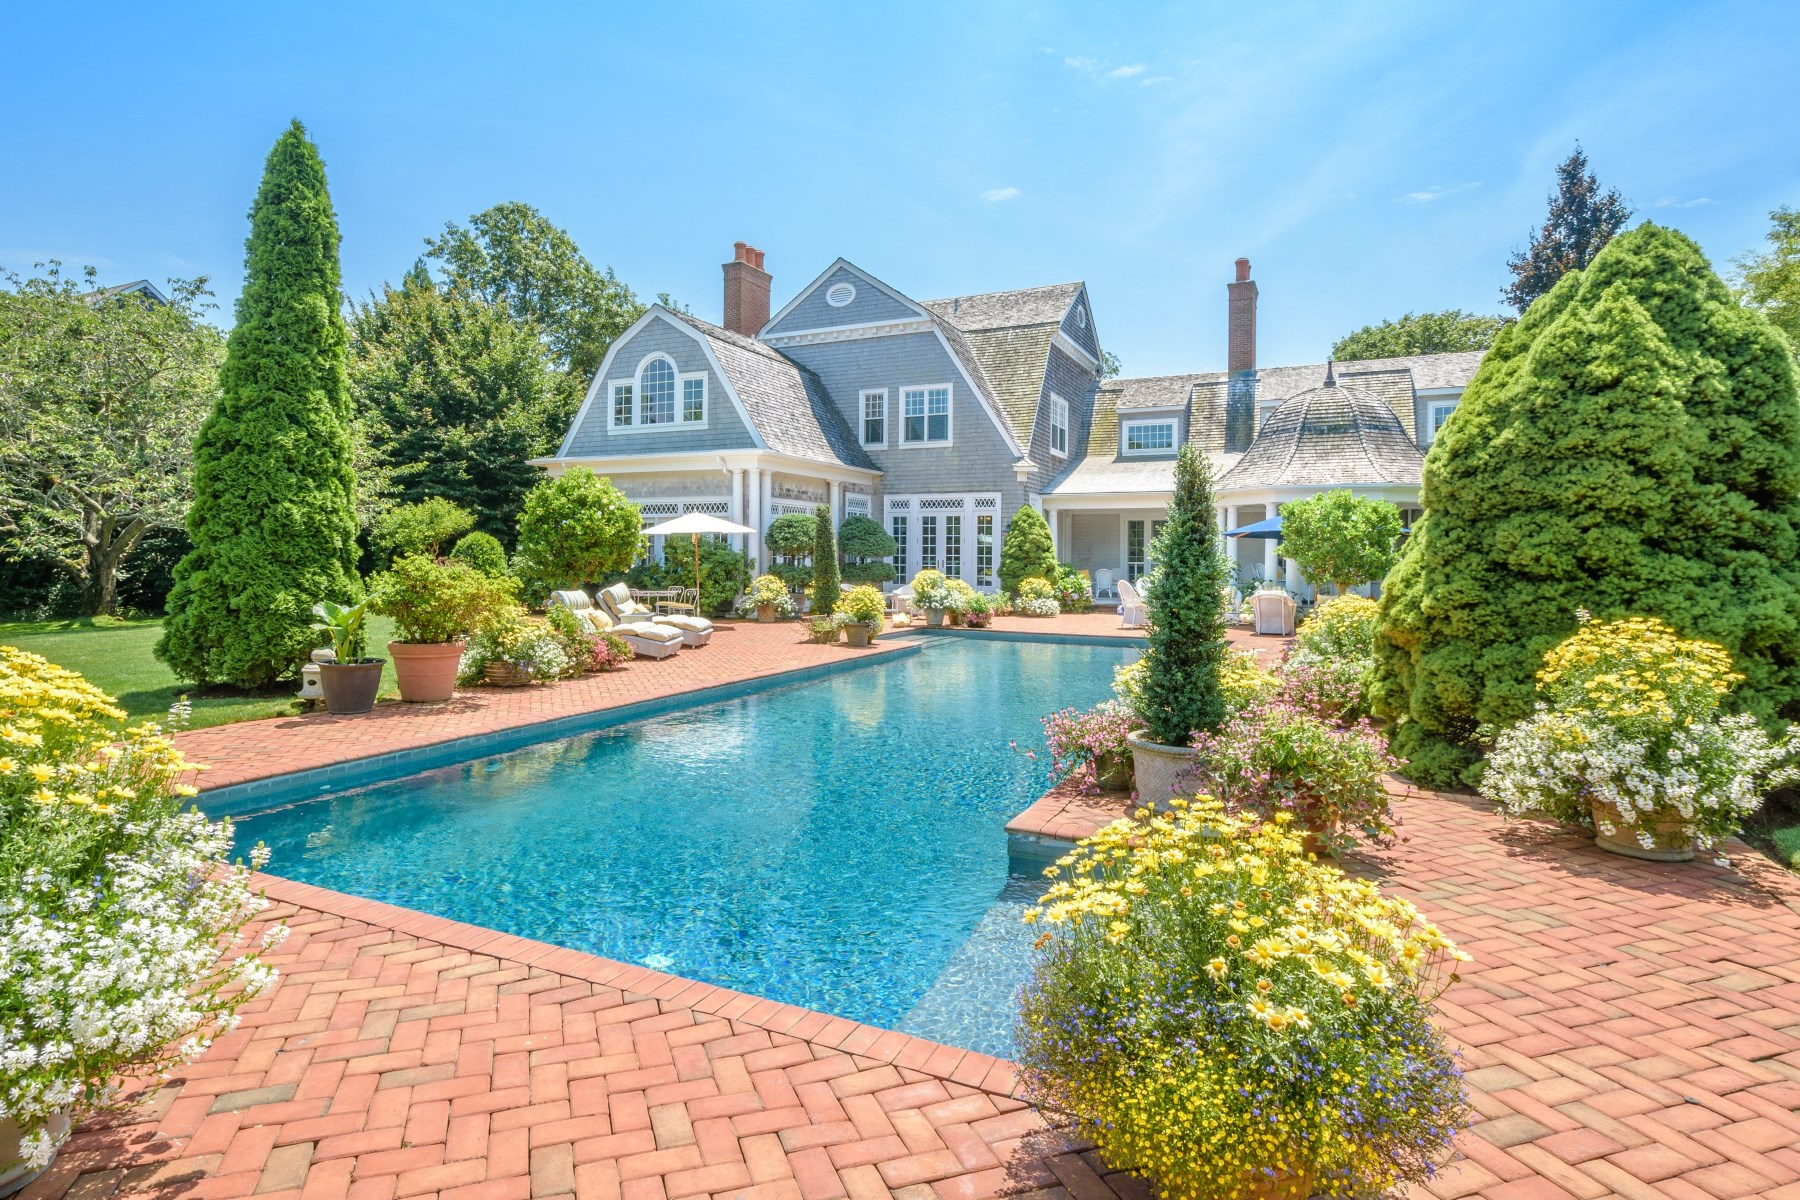 Single Family Home for Sale at Legendary Gin Lane 237 Gin Lane Southampton, New York 11968 United States